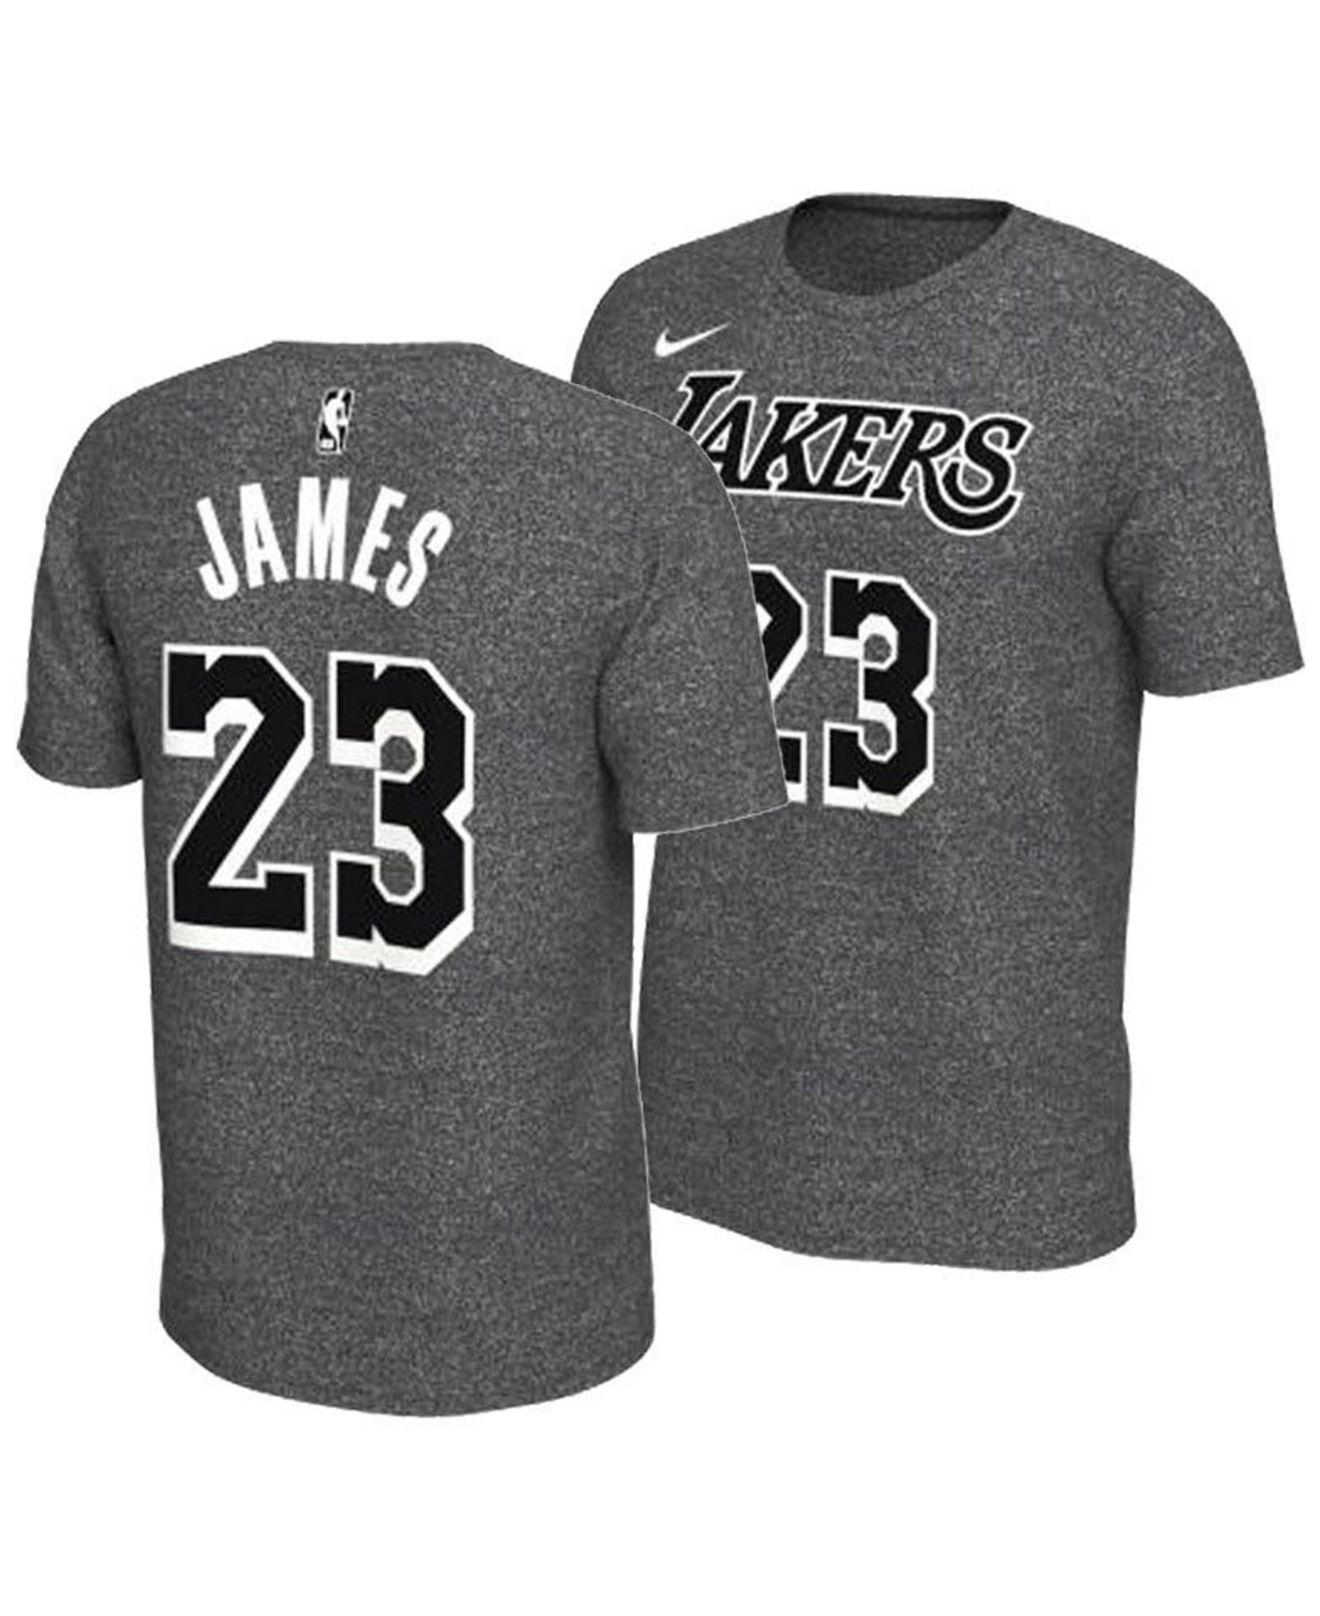 02fc61c6b98 Lyst - Nike Lebron James Los Angeles Lakers Marled Player T-shirt in ...